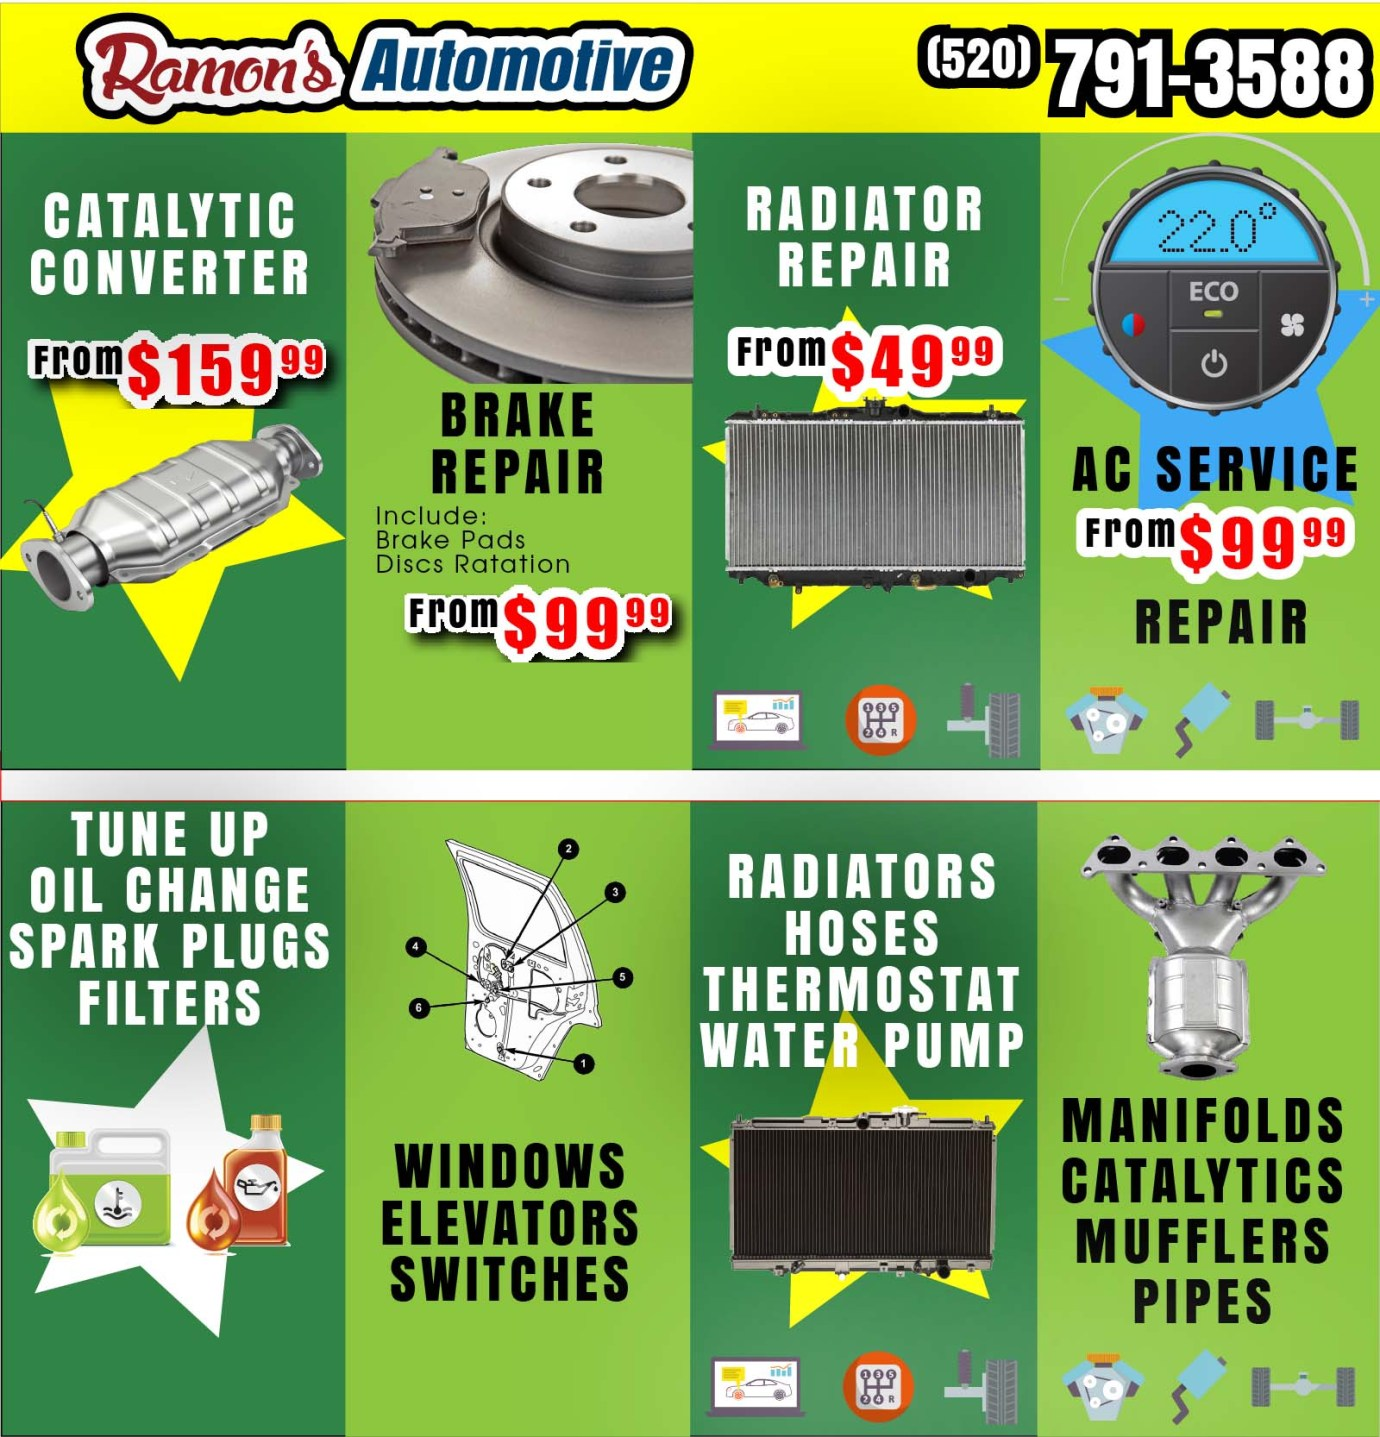 Ramon's Automotive | 1721 S 4th Ave  Tucson AZ | Phone: (520